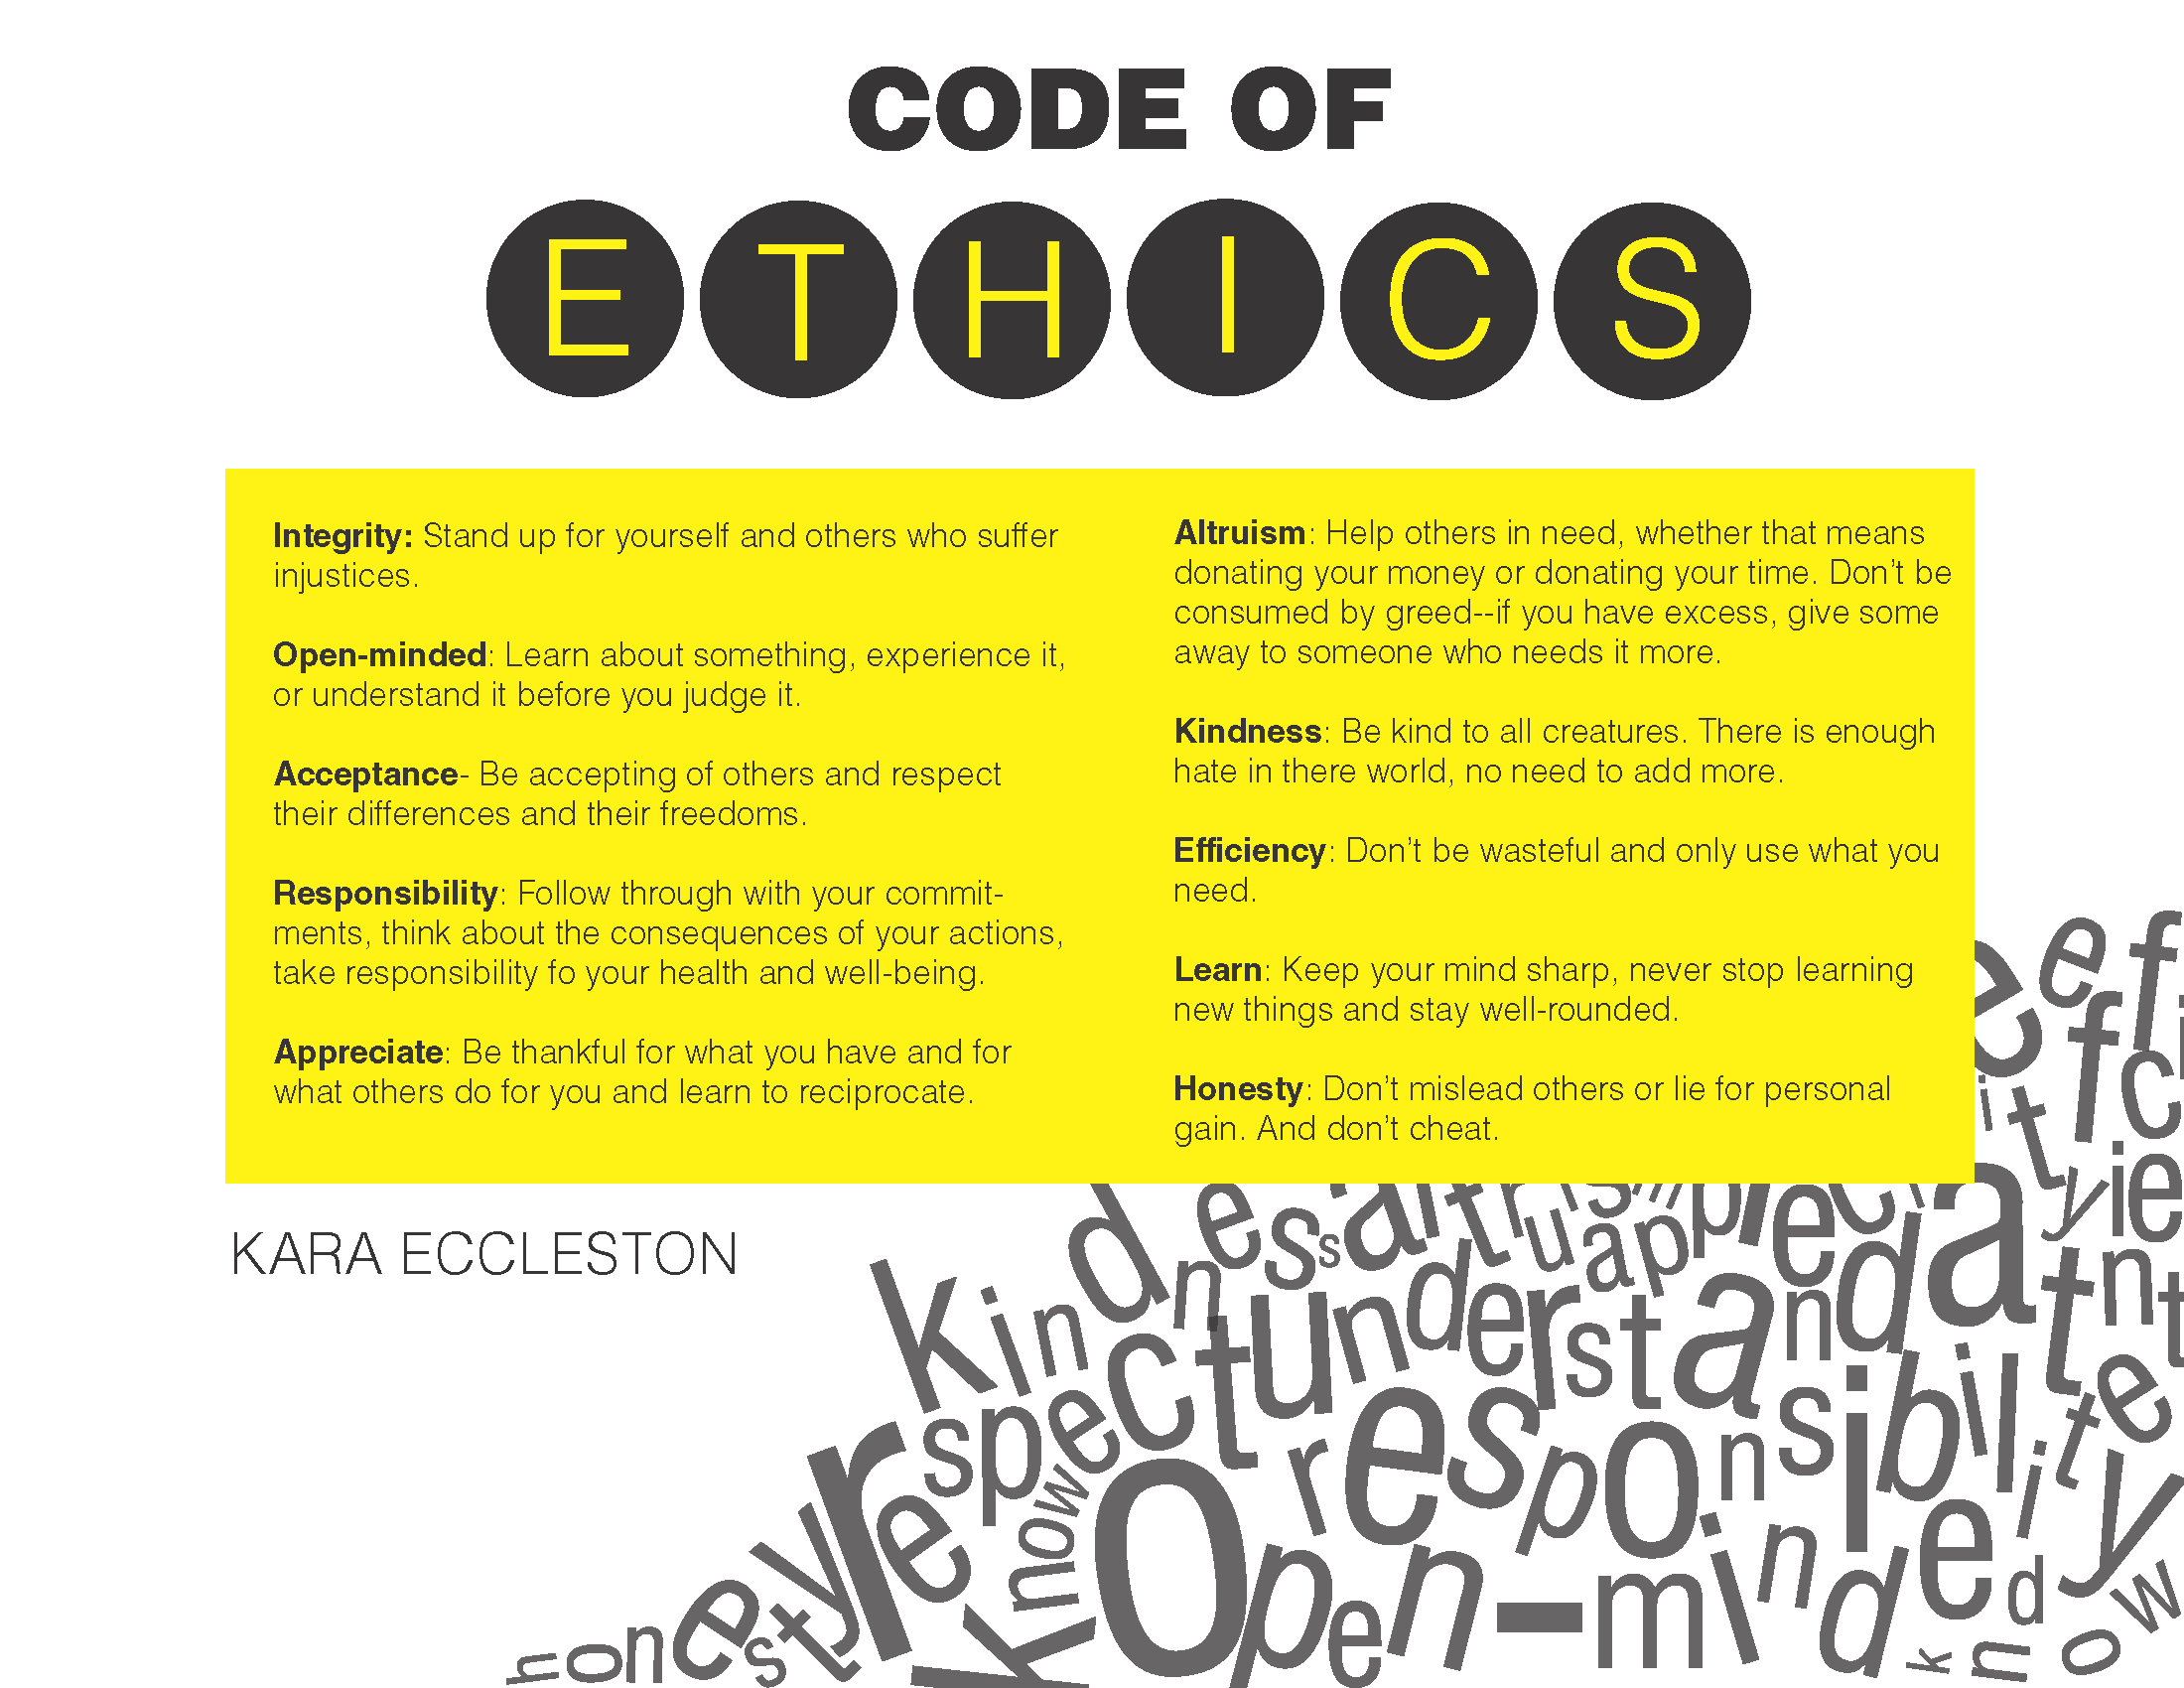 Essay on professional ethics